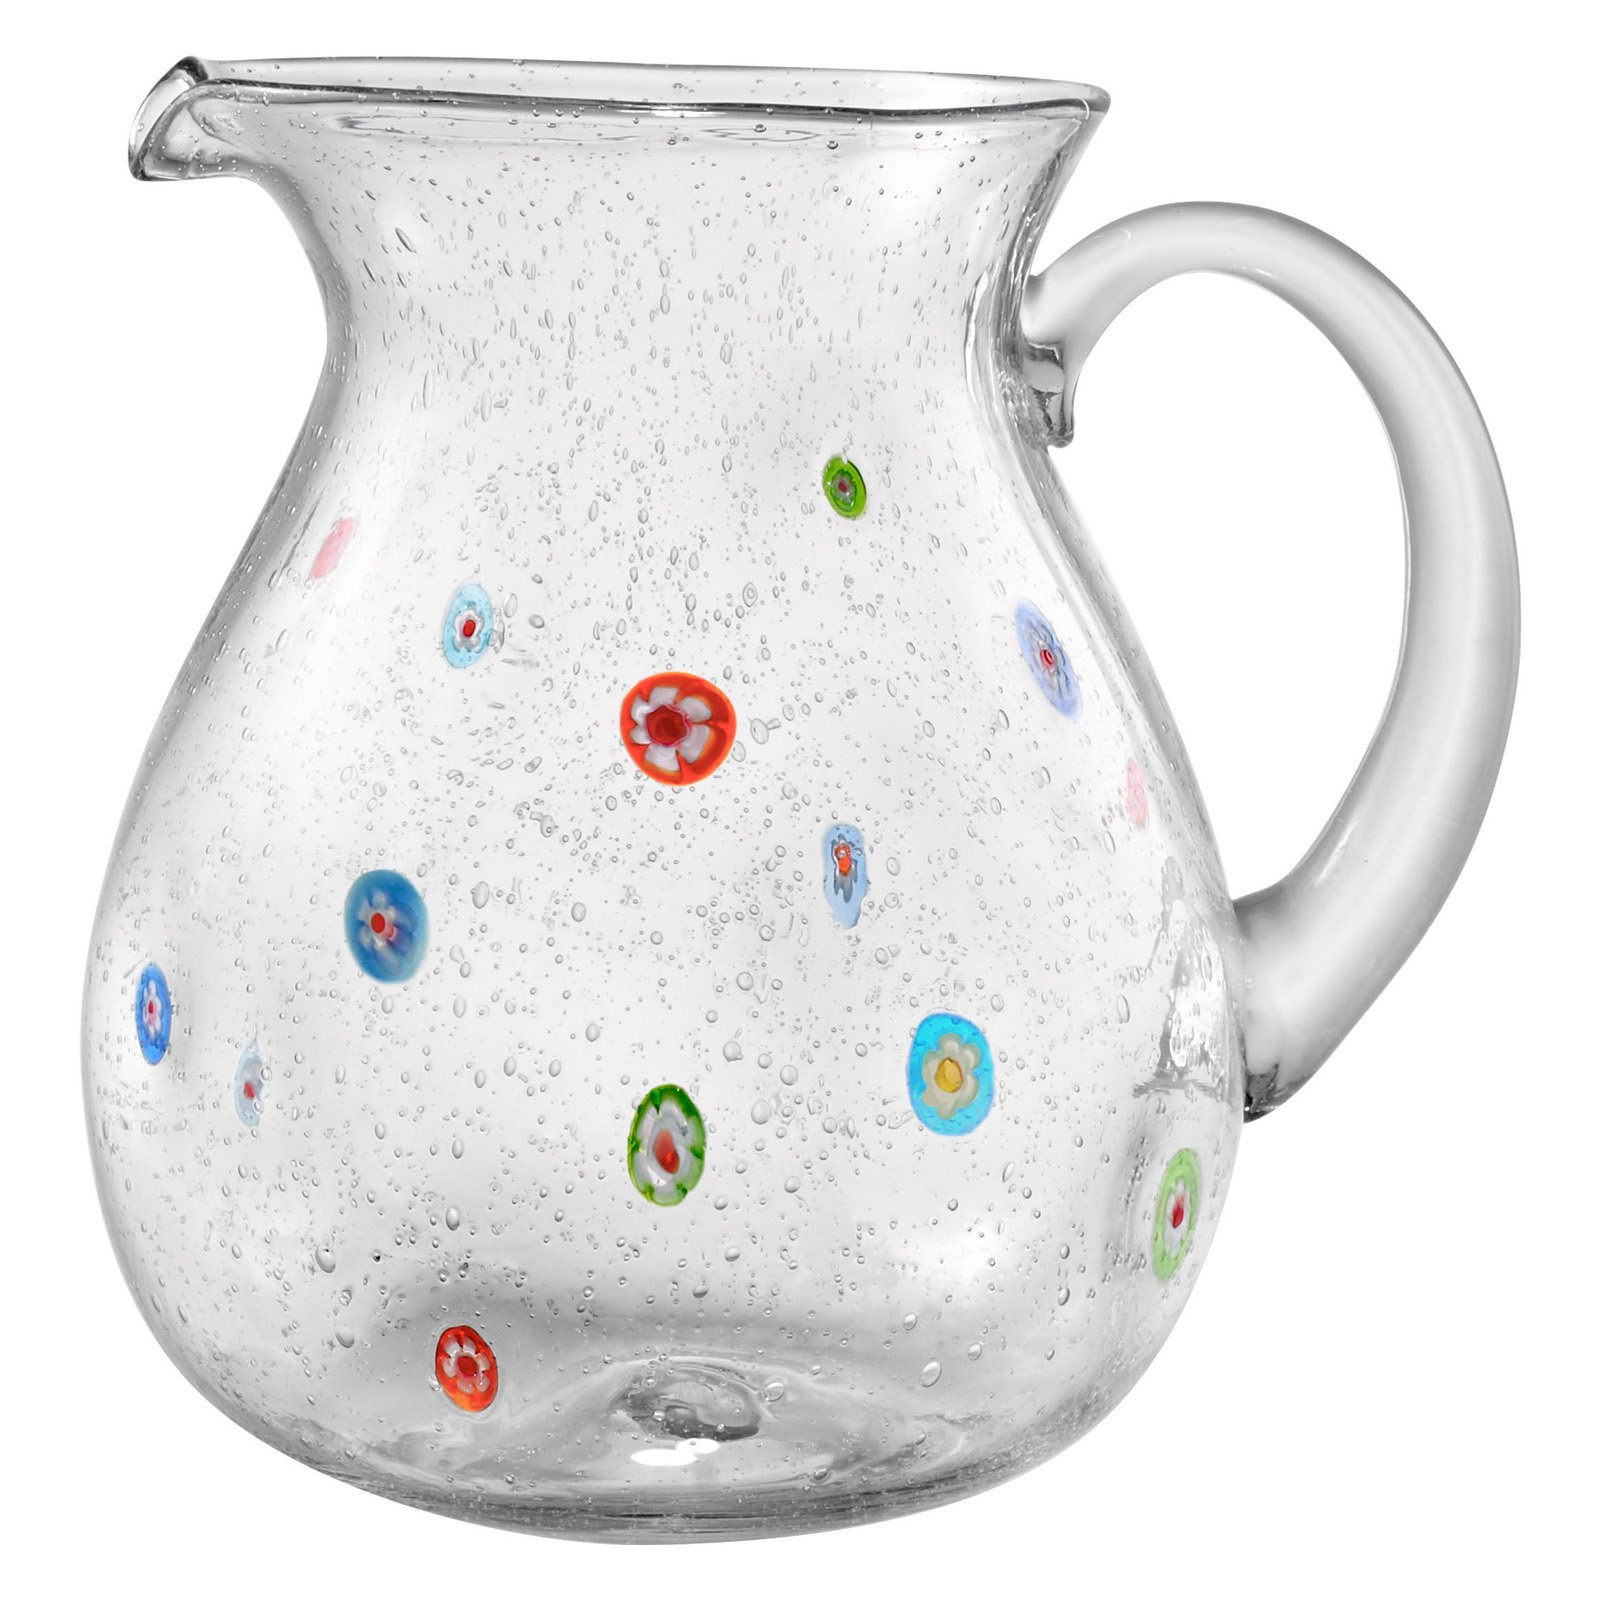 Artland Inc 70 oz. Fiore Glass Pitcher